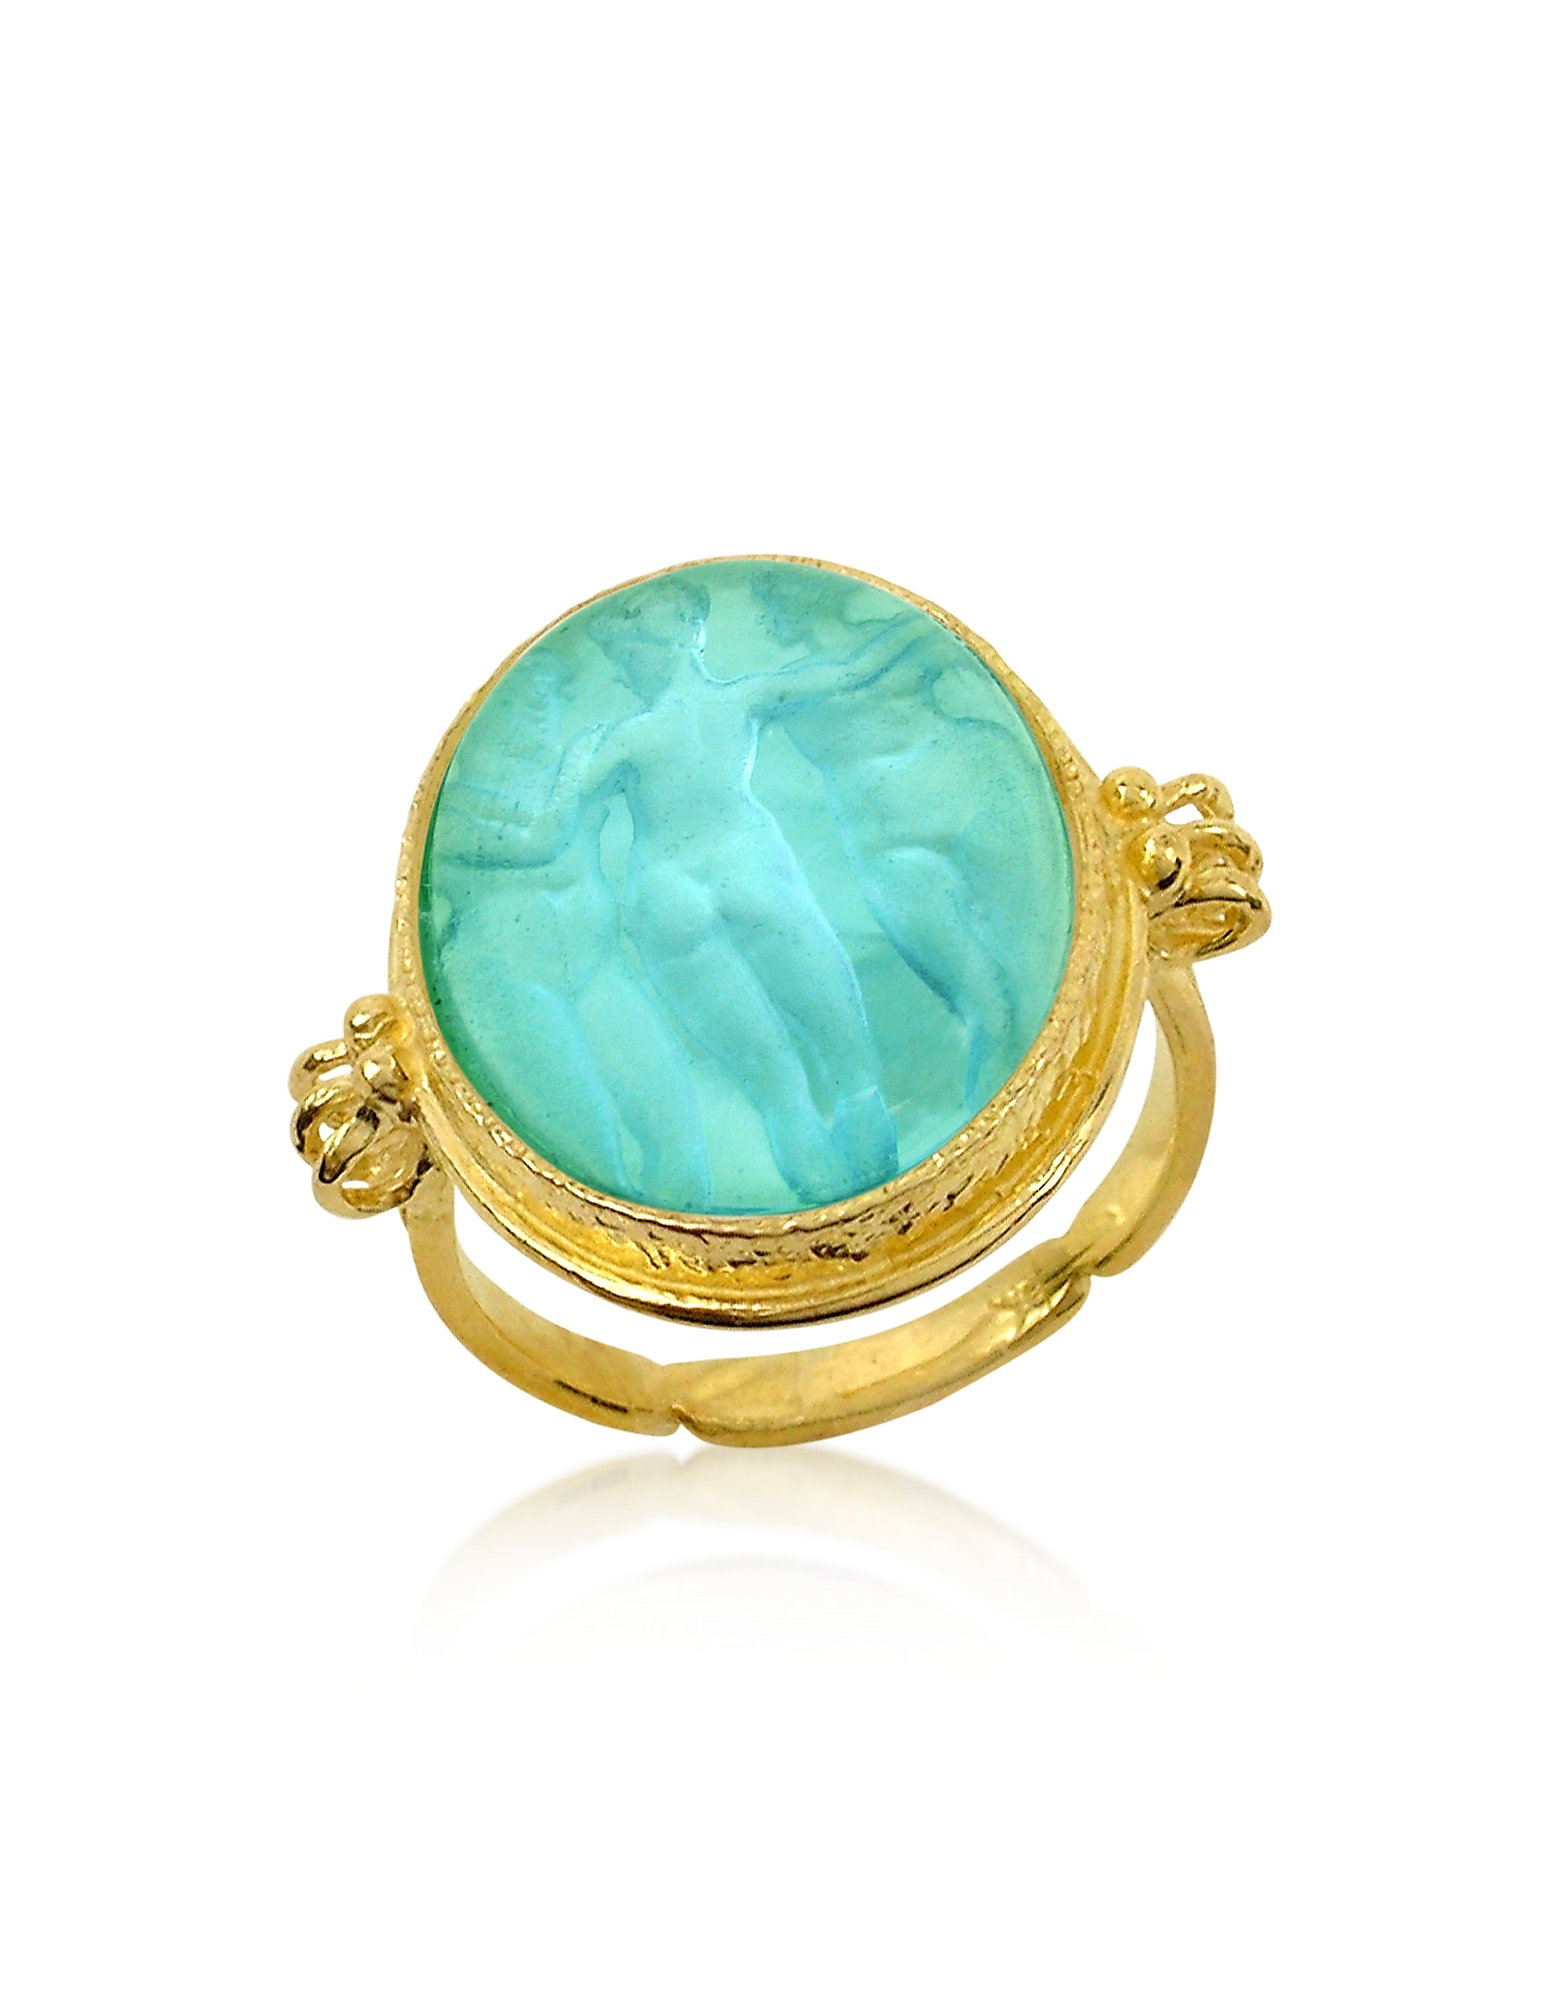 Tagliamonte Cameo, Three Graces - 18K Gold Turquoise Mother of Pearl Cameo Ring